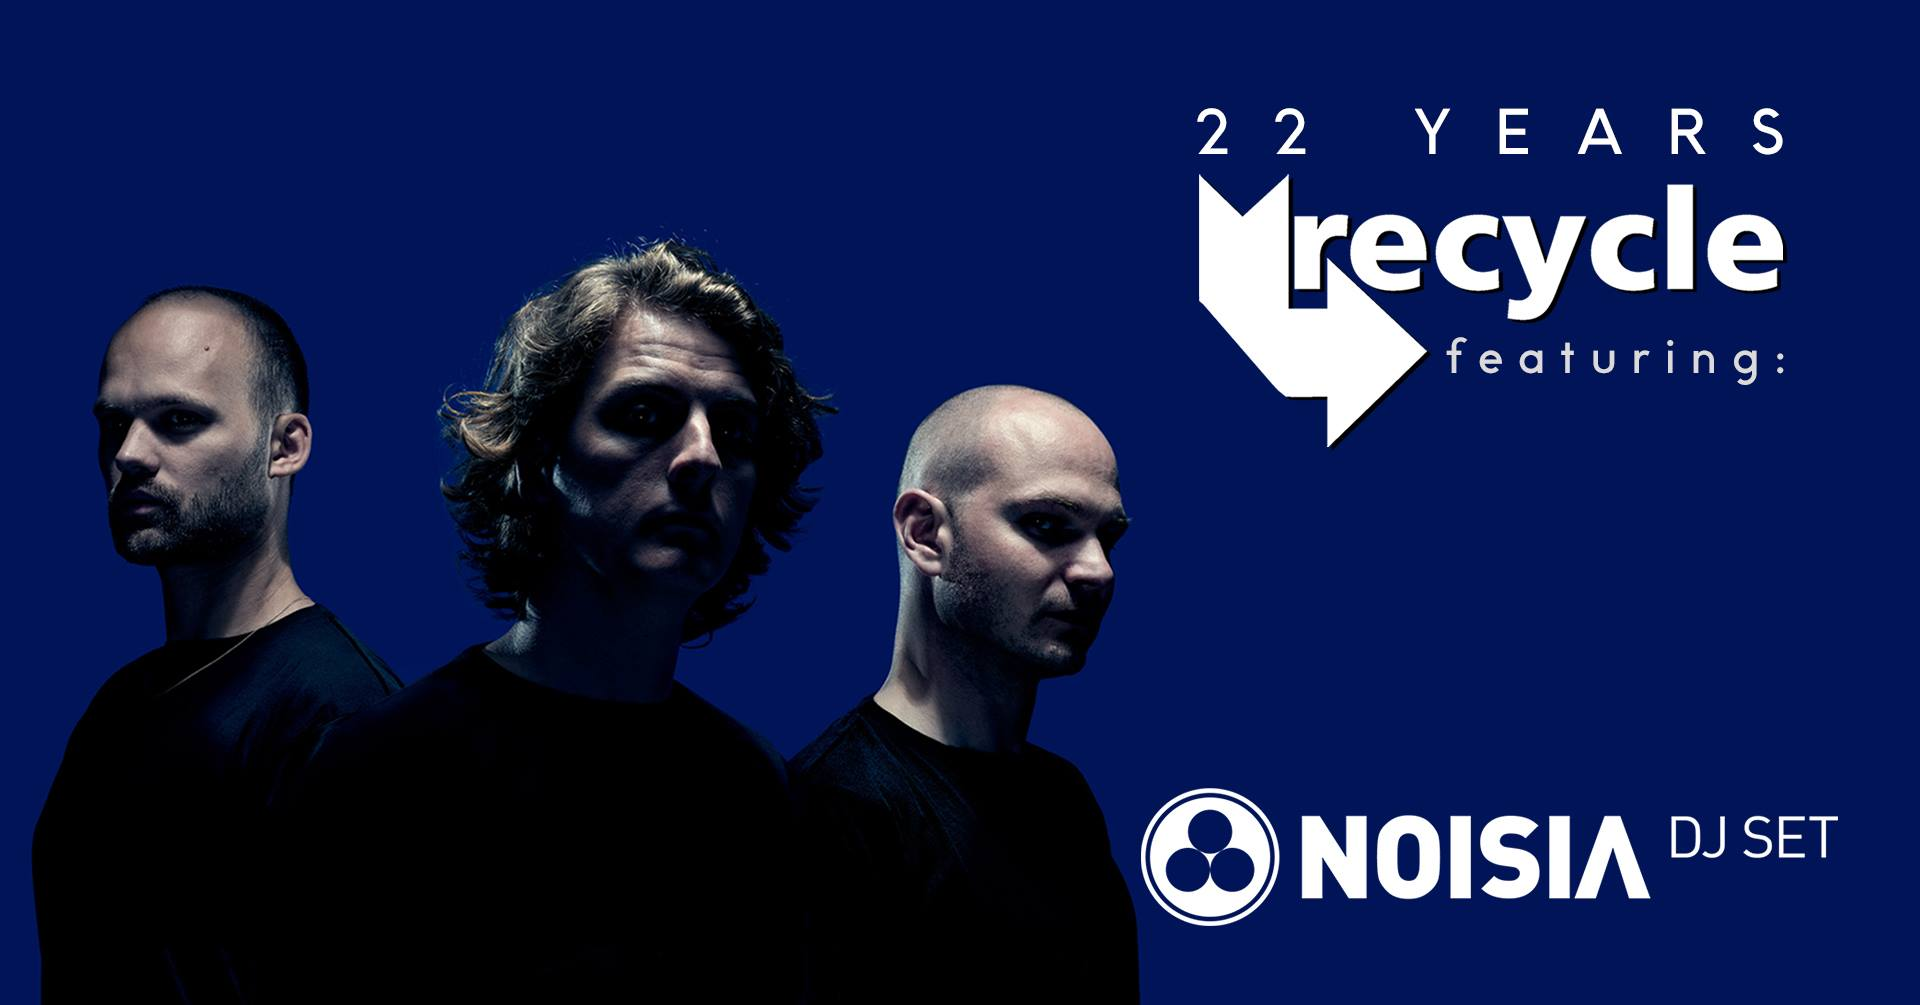 22 Years Recycle feat. Noisia (DJ-Set)